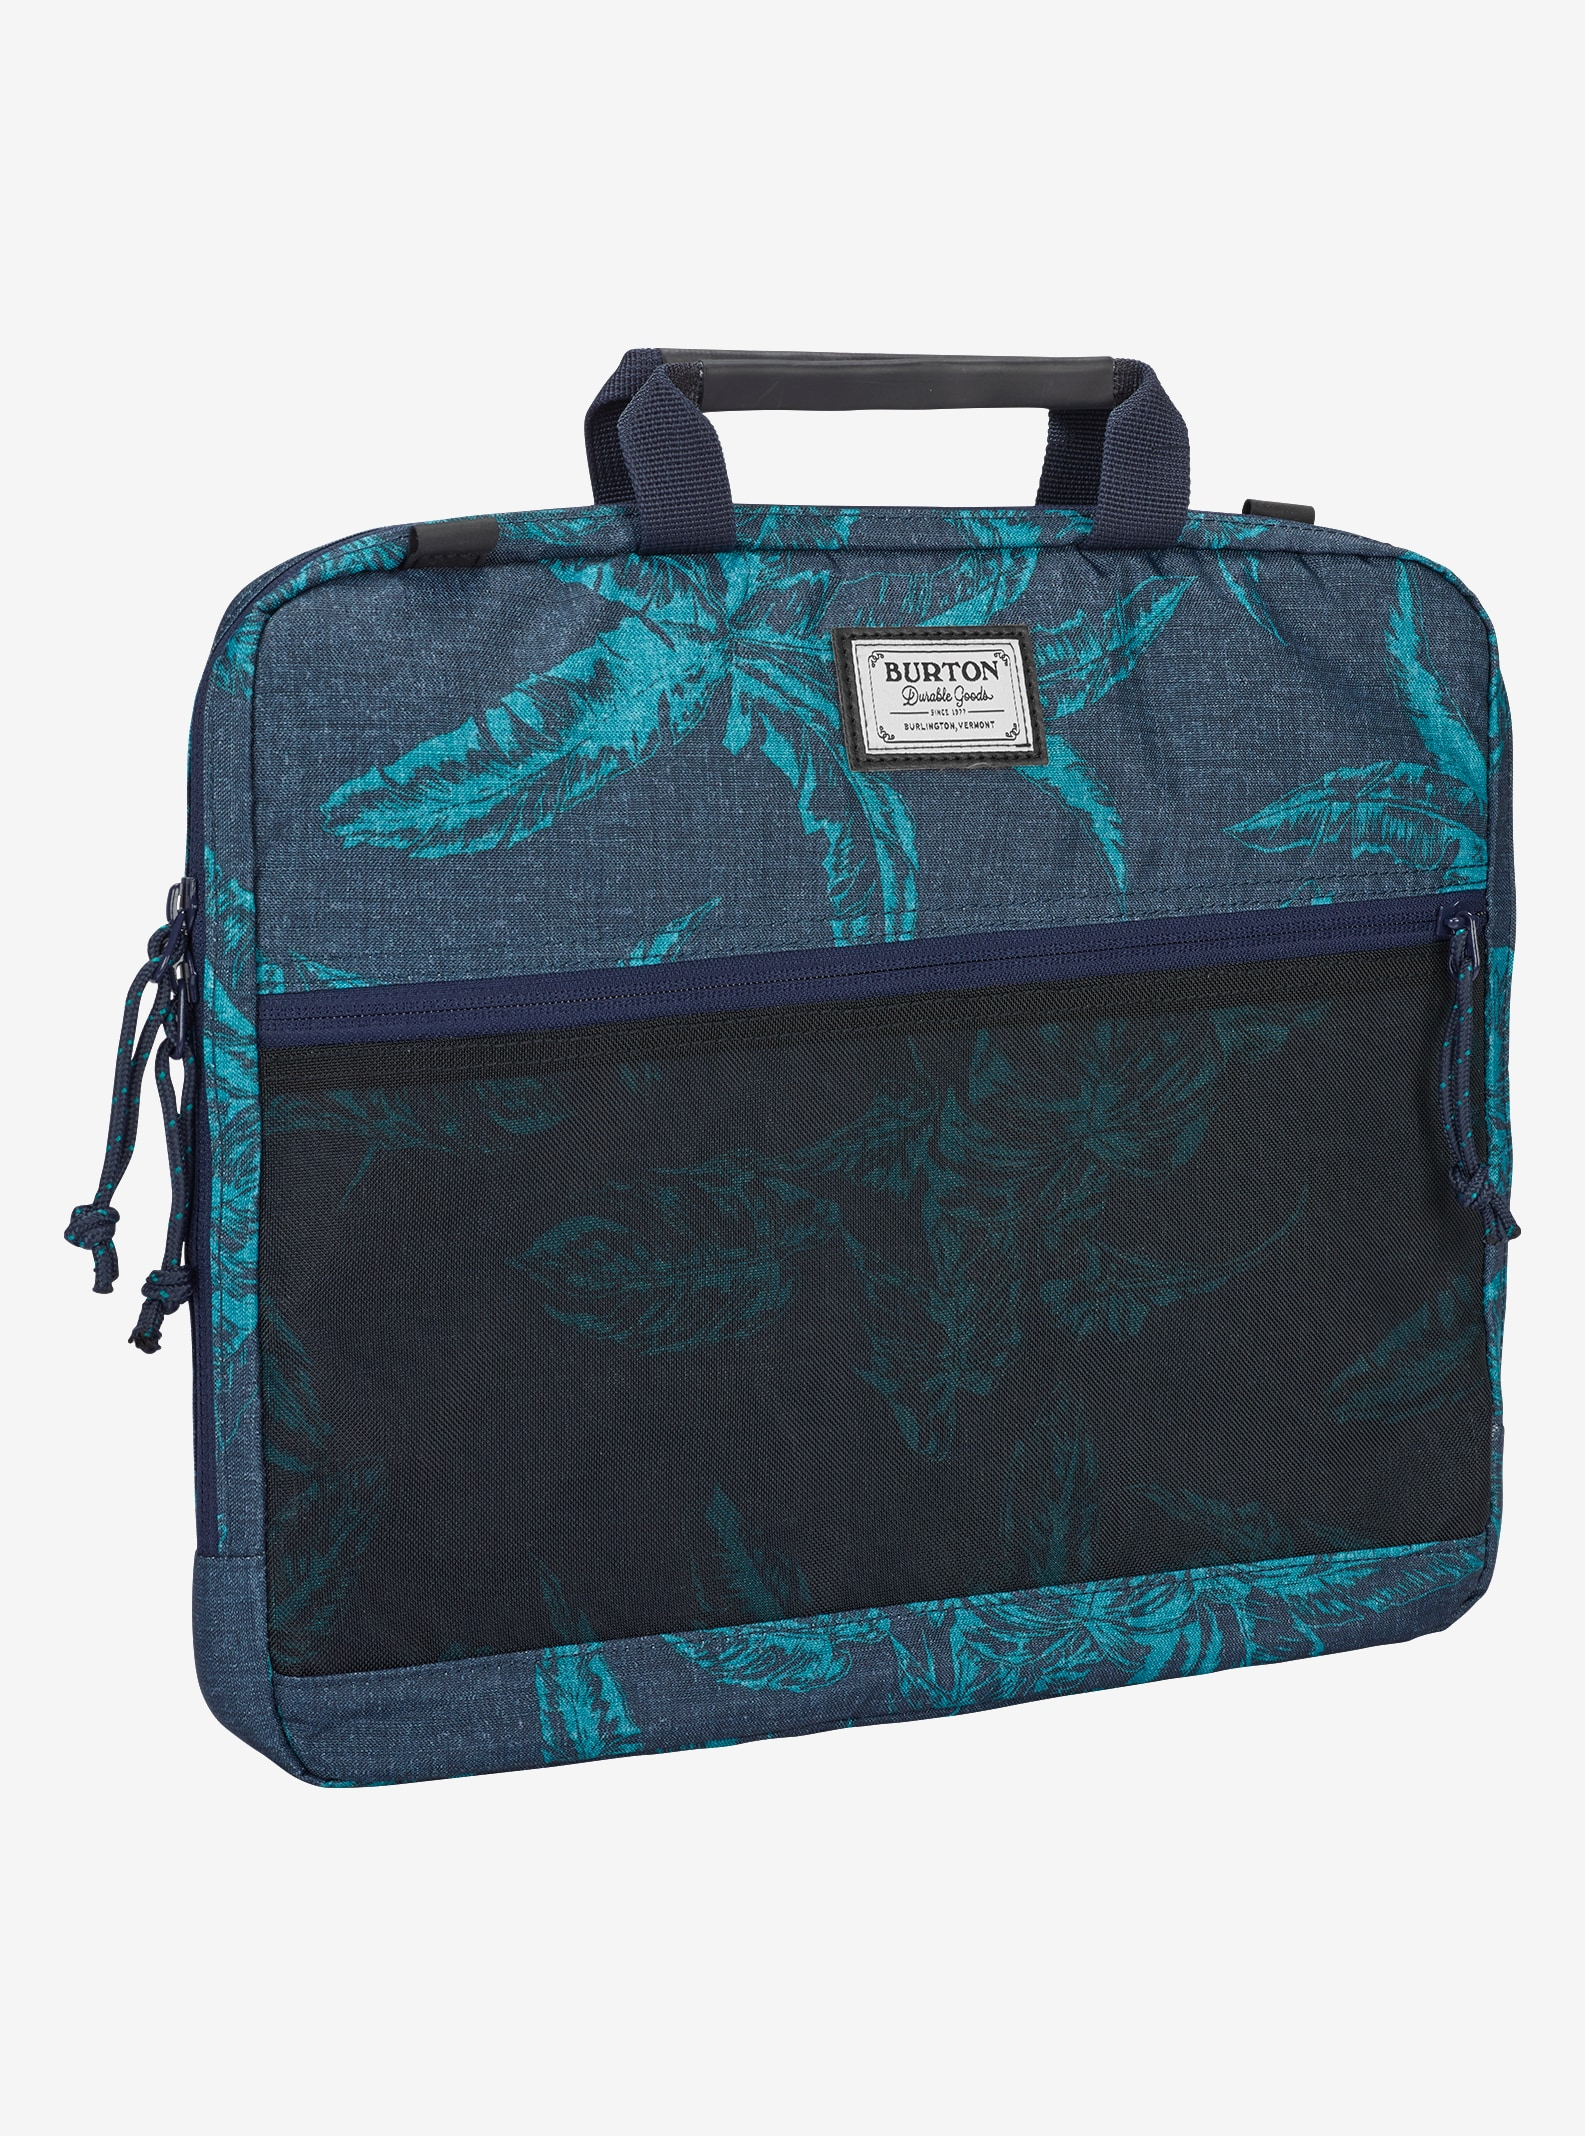 Burton Hyperlink 13in Laptop Case shown in Tropical Print